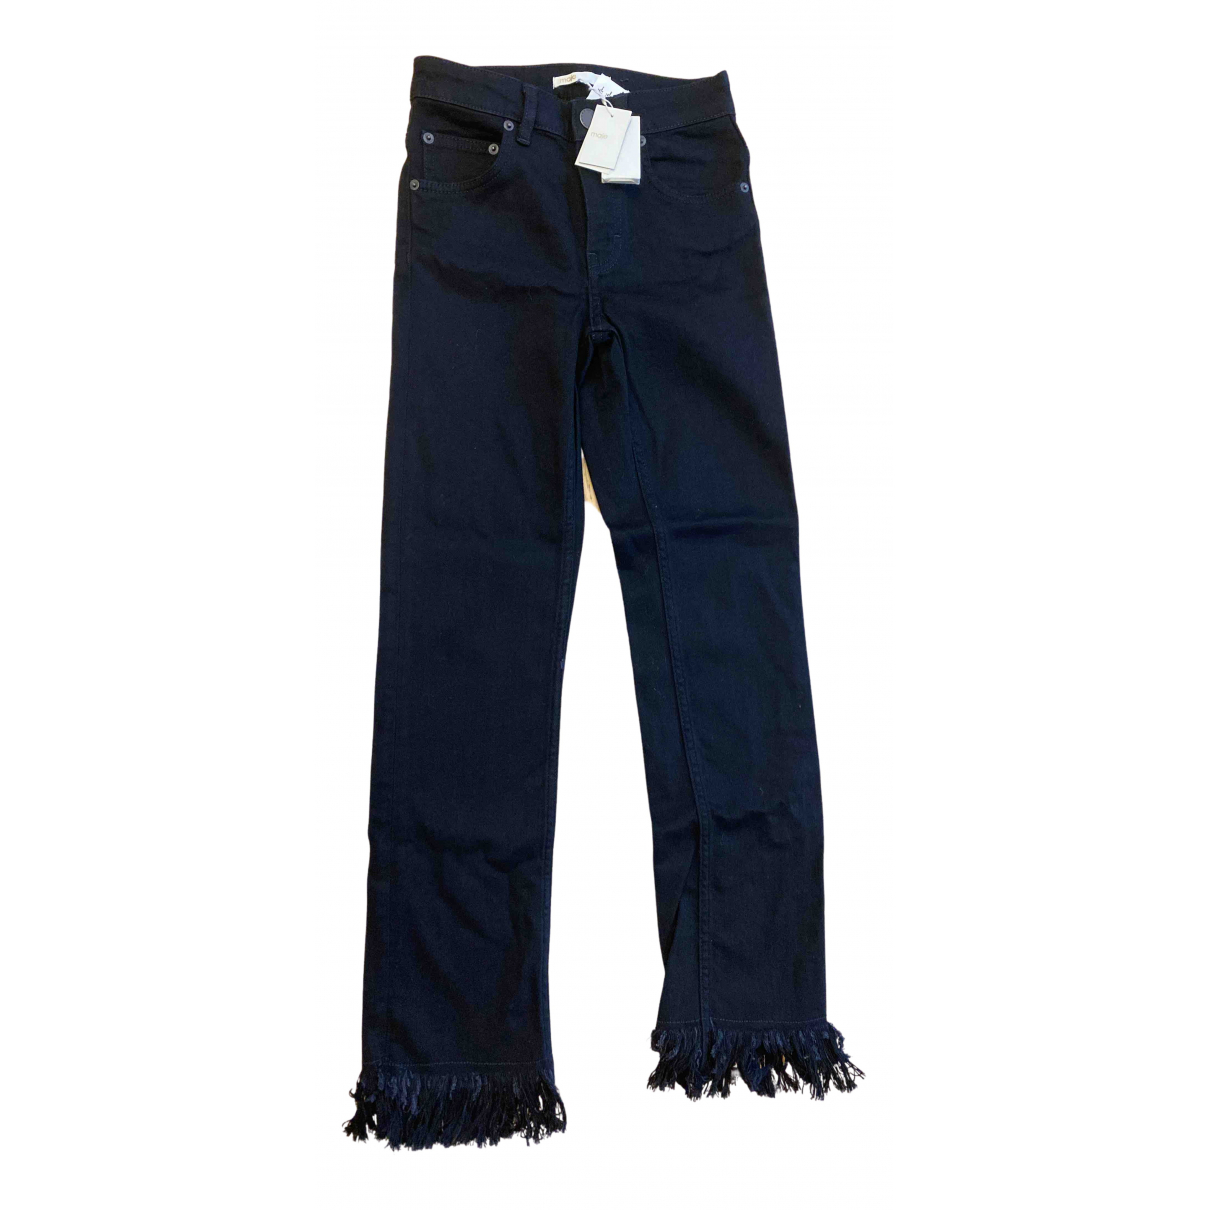 Maje N Black Denim - Jeans Jeans for Women 34 FR